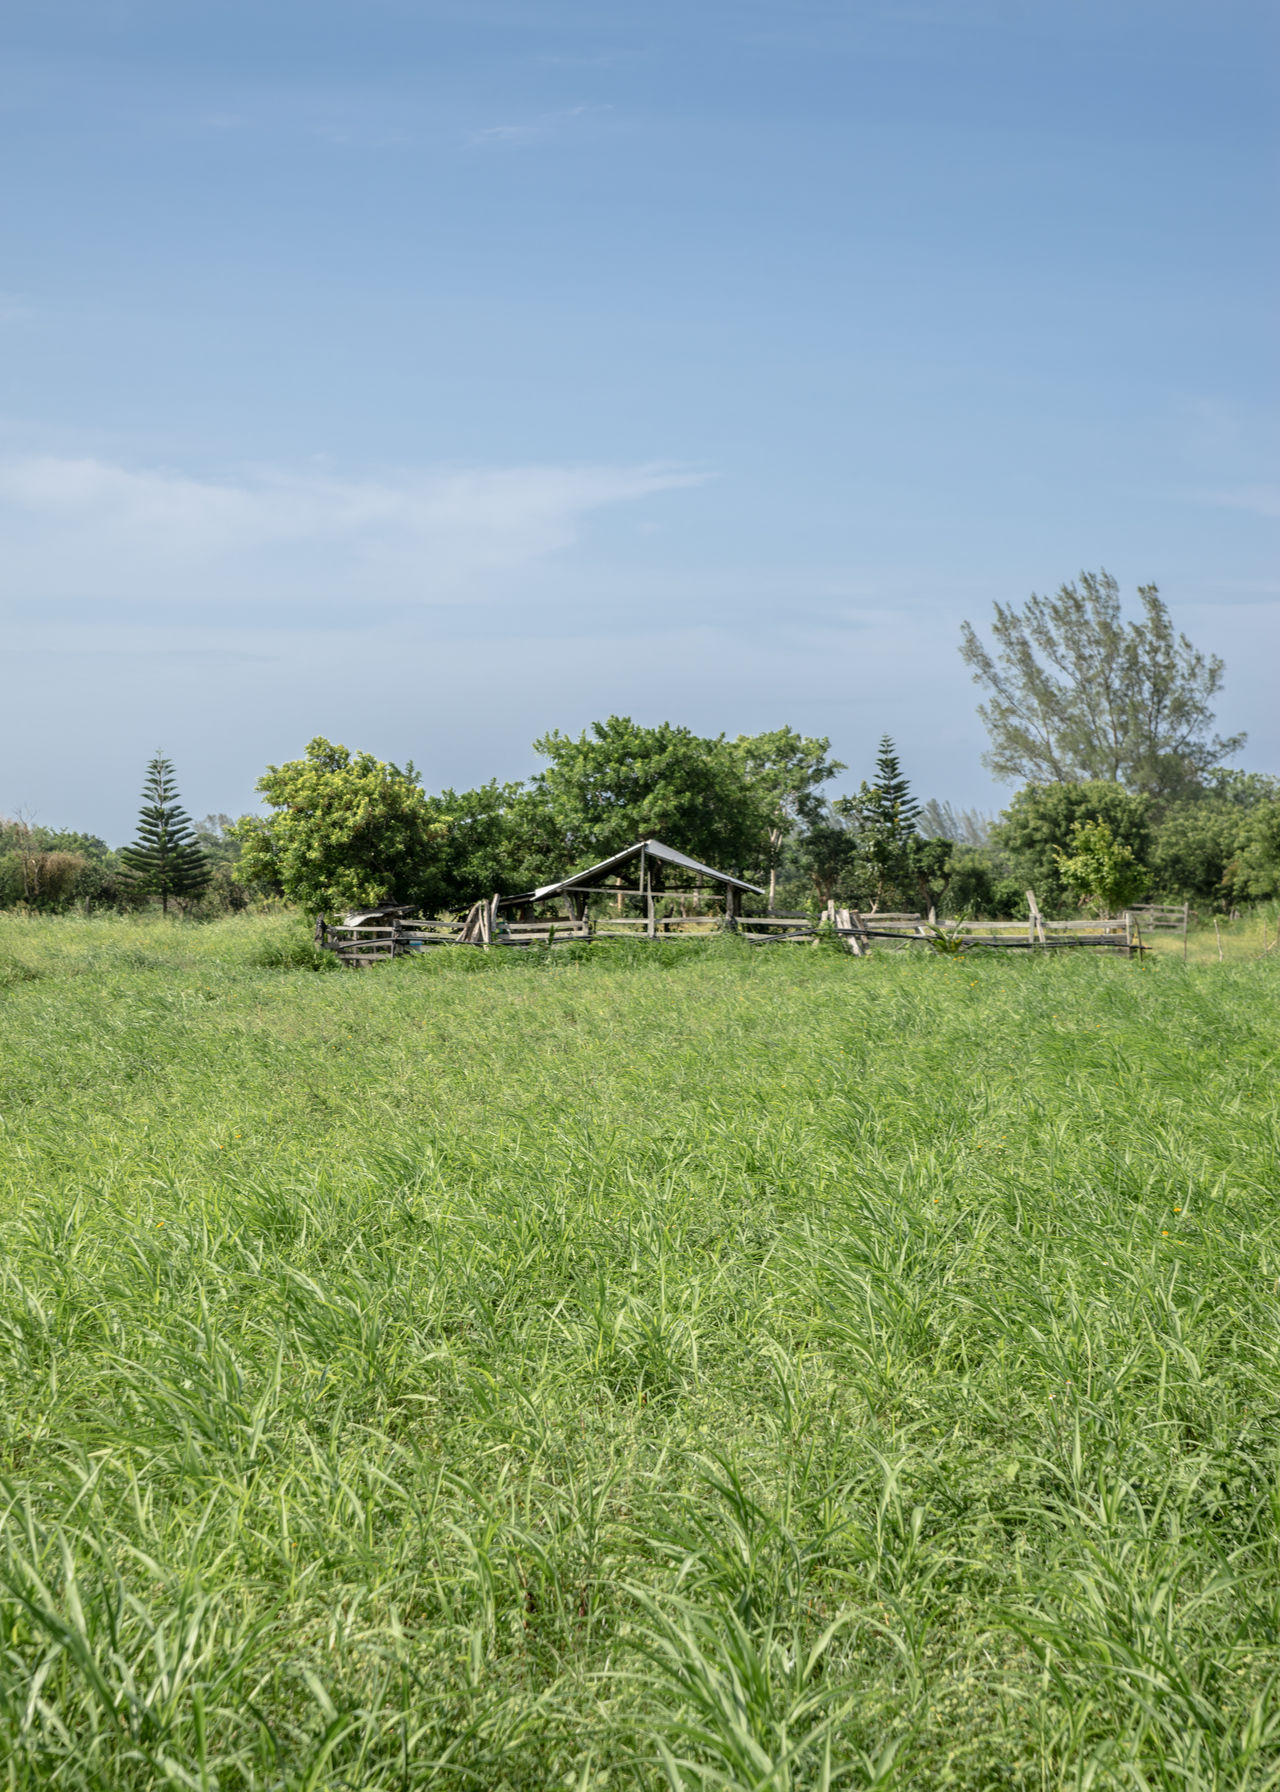 Agriculture Banana Tree Beauty In Nature Day Field Grass Green Color Growth Landscape Landscape_Collection Nature Nature Nature Photography Nature_collection No People Outdoors Rural Scene Scenics Sky Tranquil Scene Tranquility Travel Travel Destinations Tree Veracruz Neighborhood Map